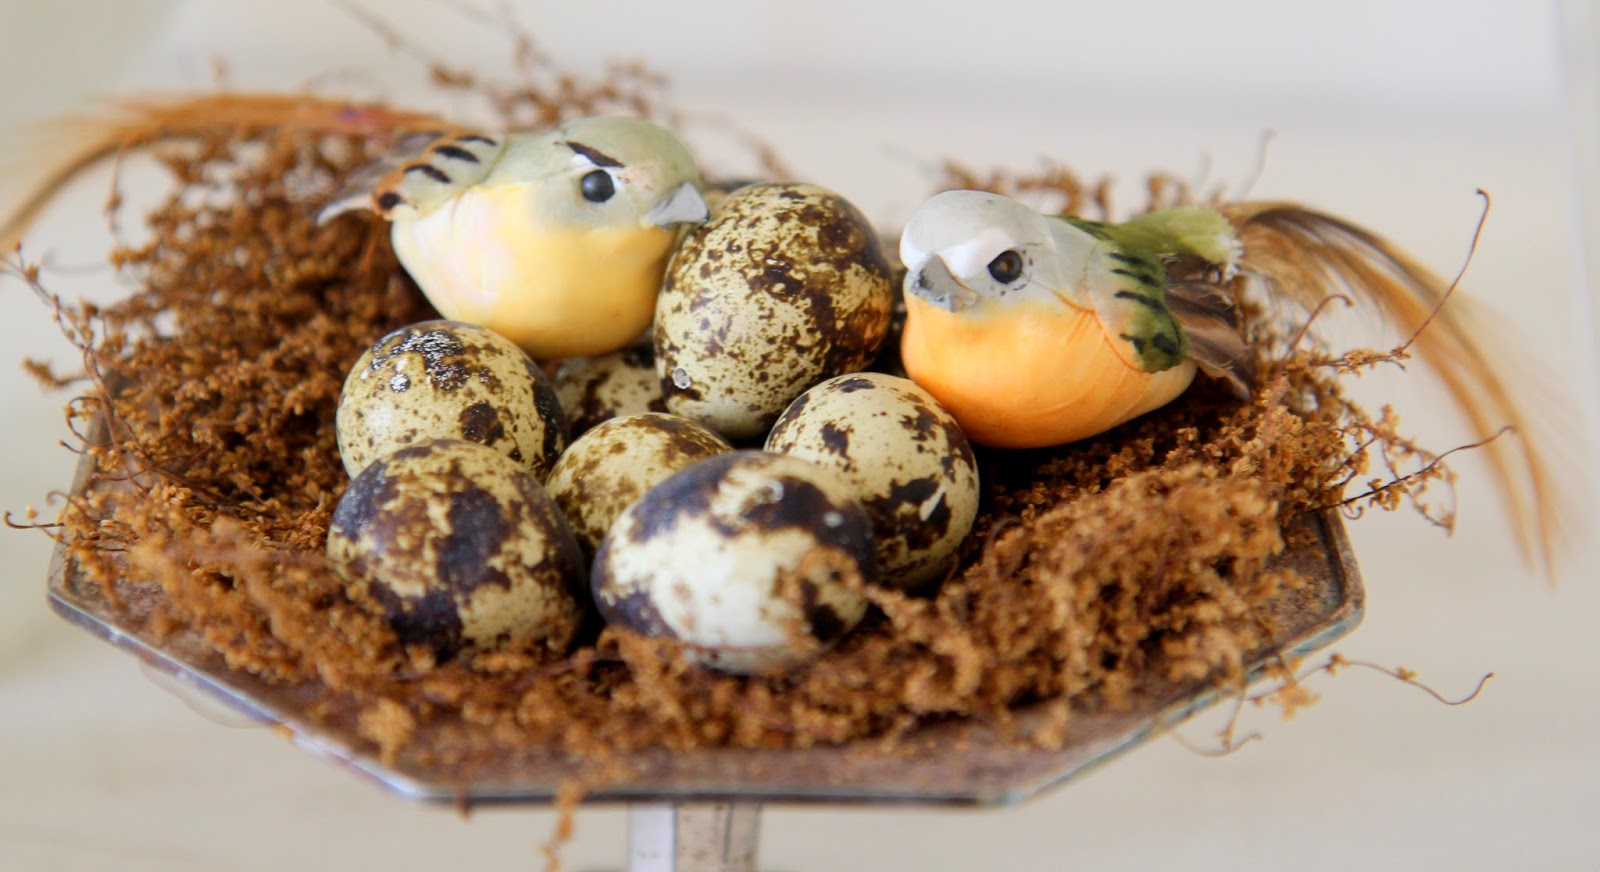 Nest with quail eggs; Easter Buffet Table Decor - Nora's Nest